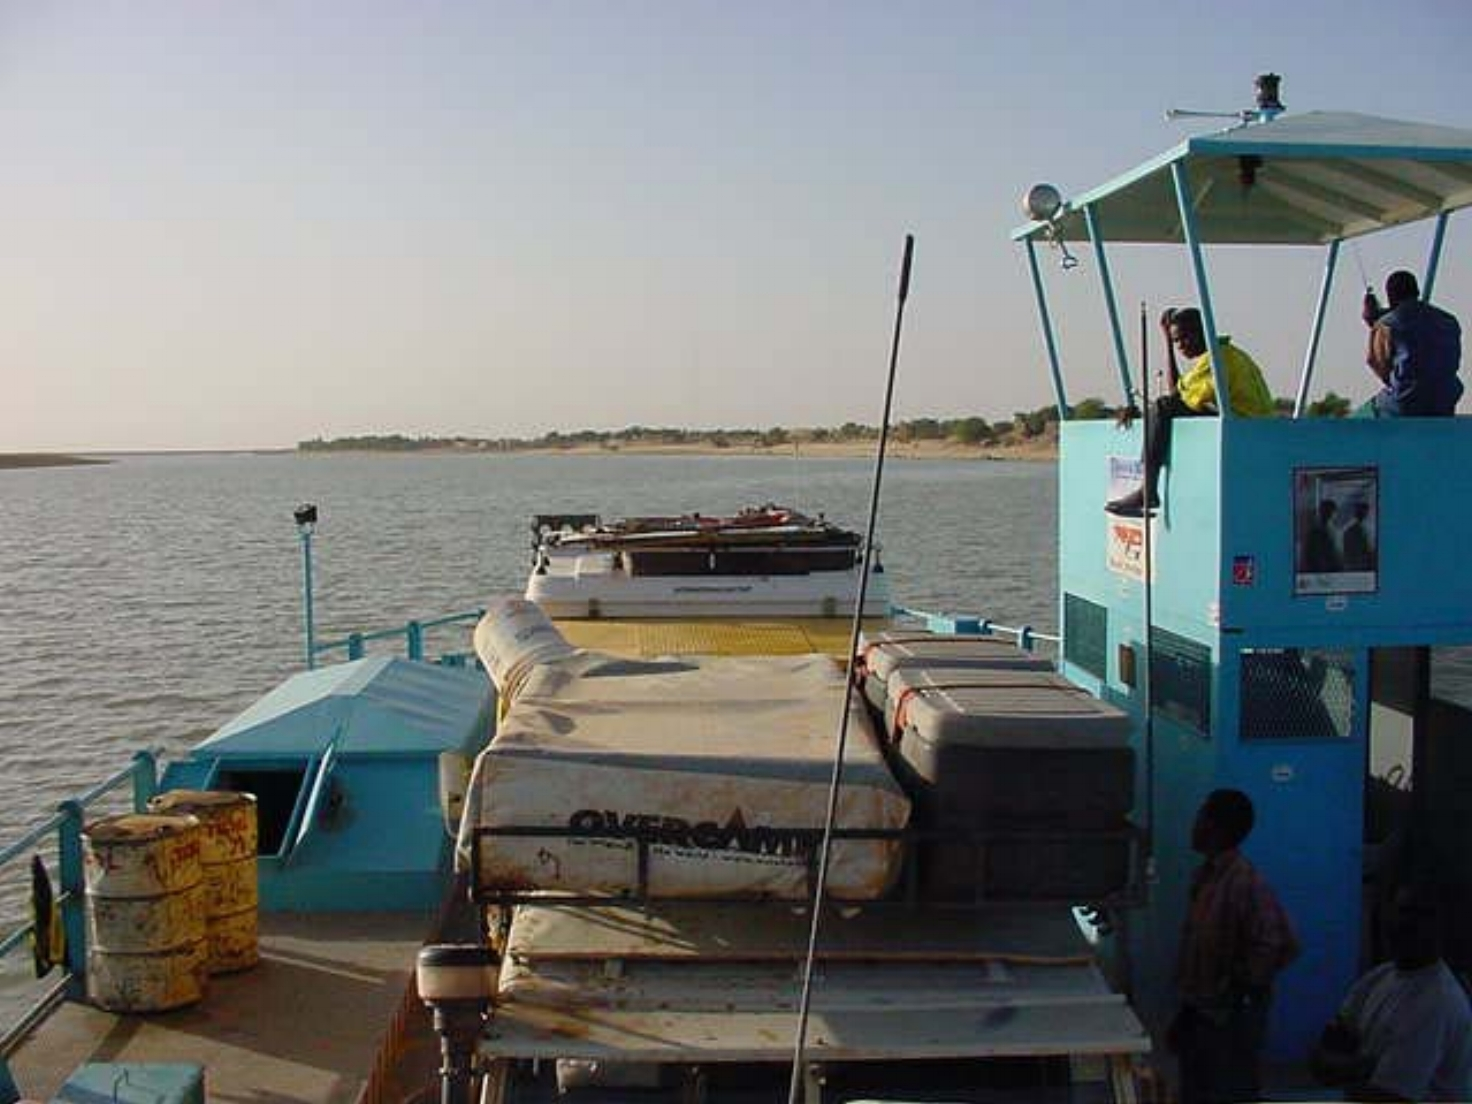 Ferry on the Niger River